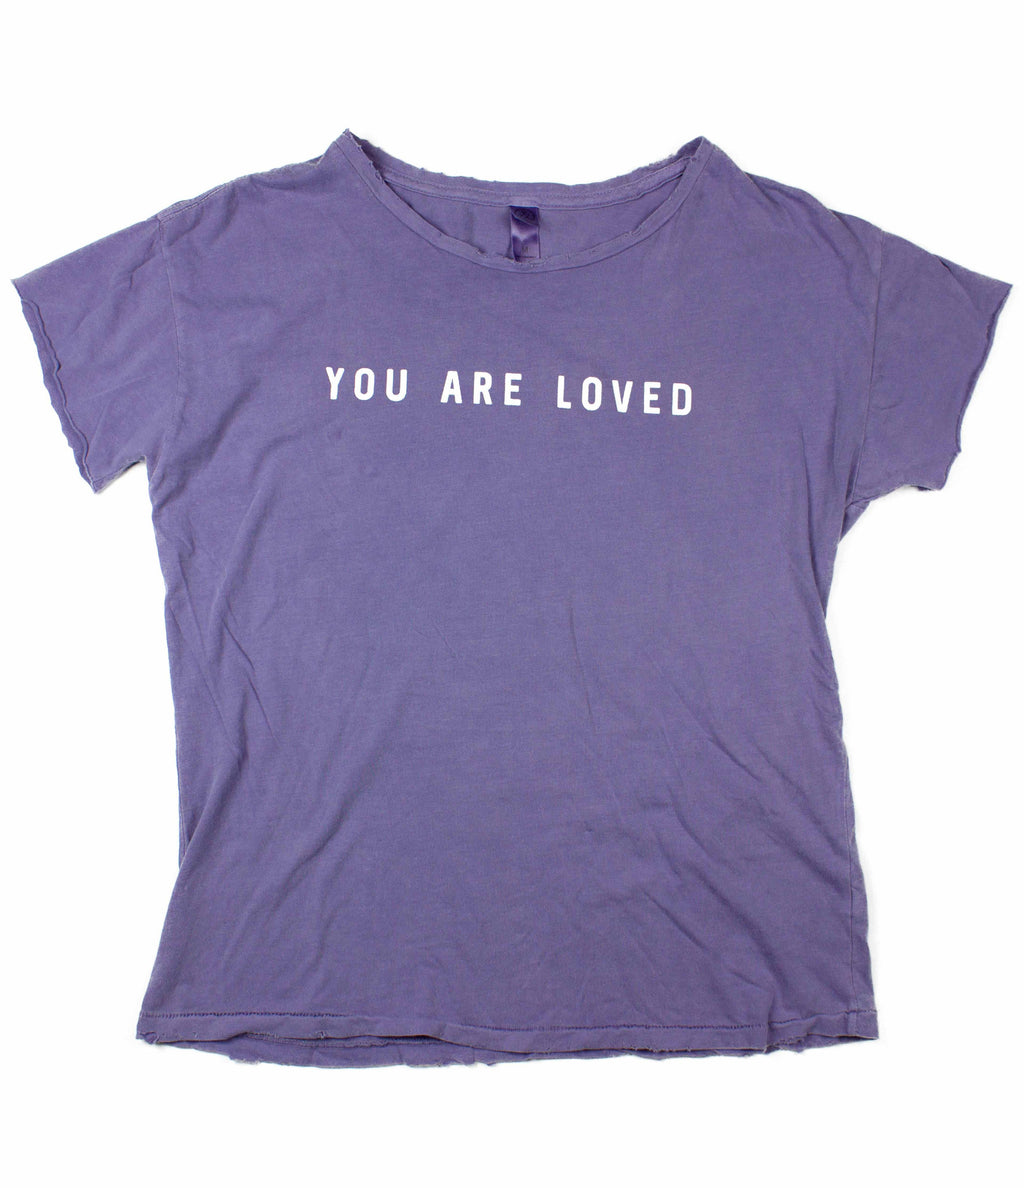 YOU ARE LOVED LILAC DISTRESSED WOMEN'S FITTED T-SHIRT